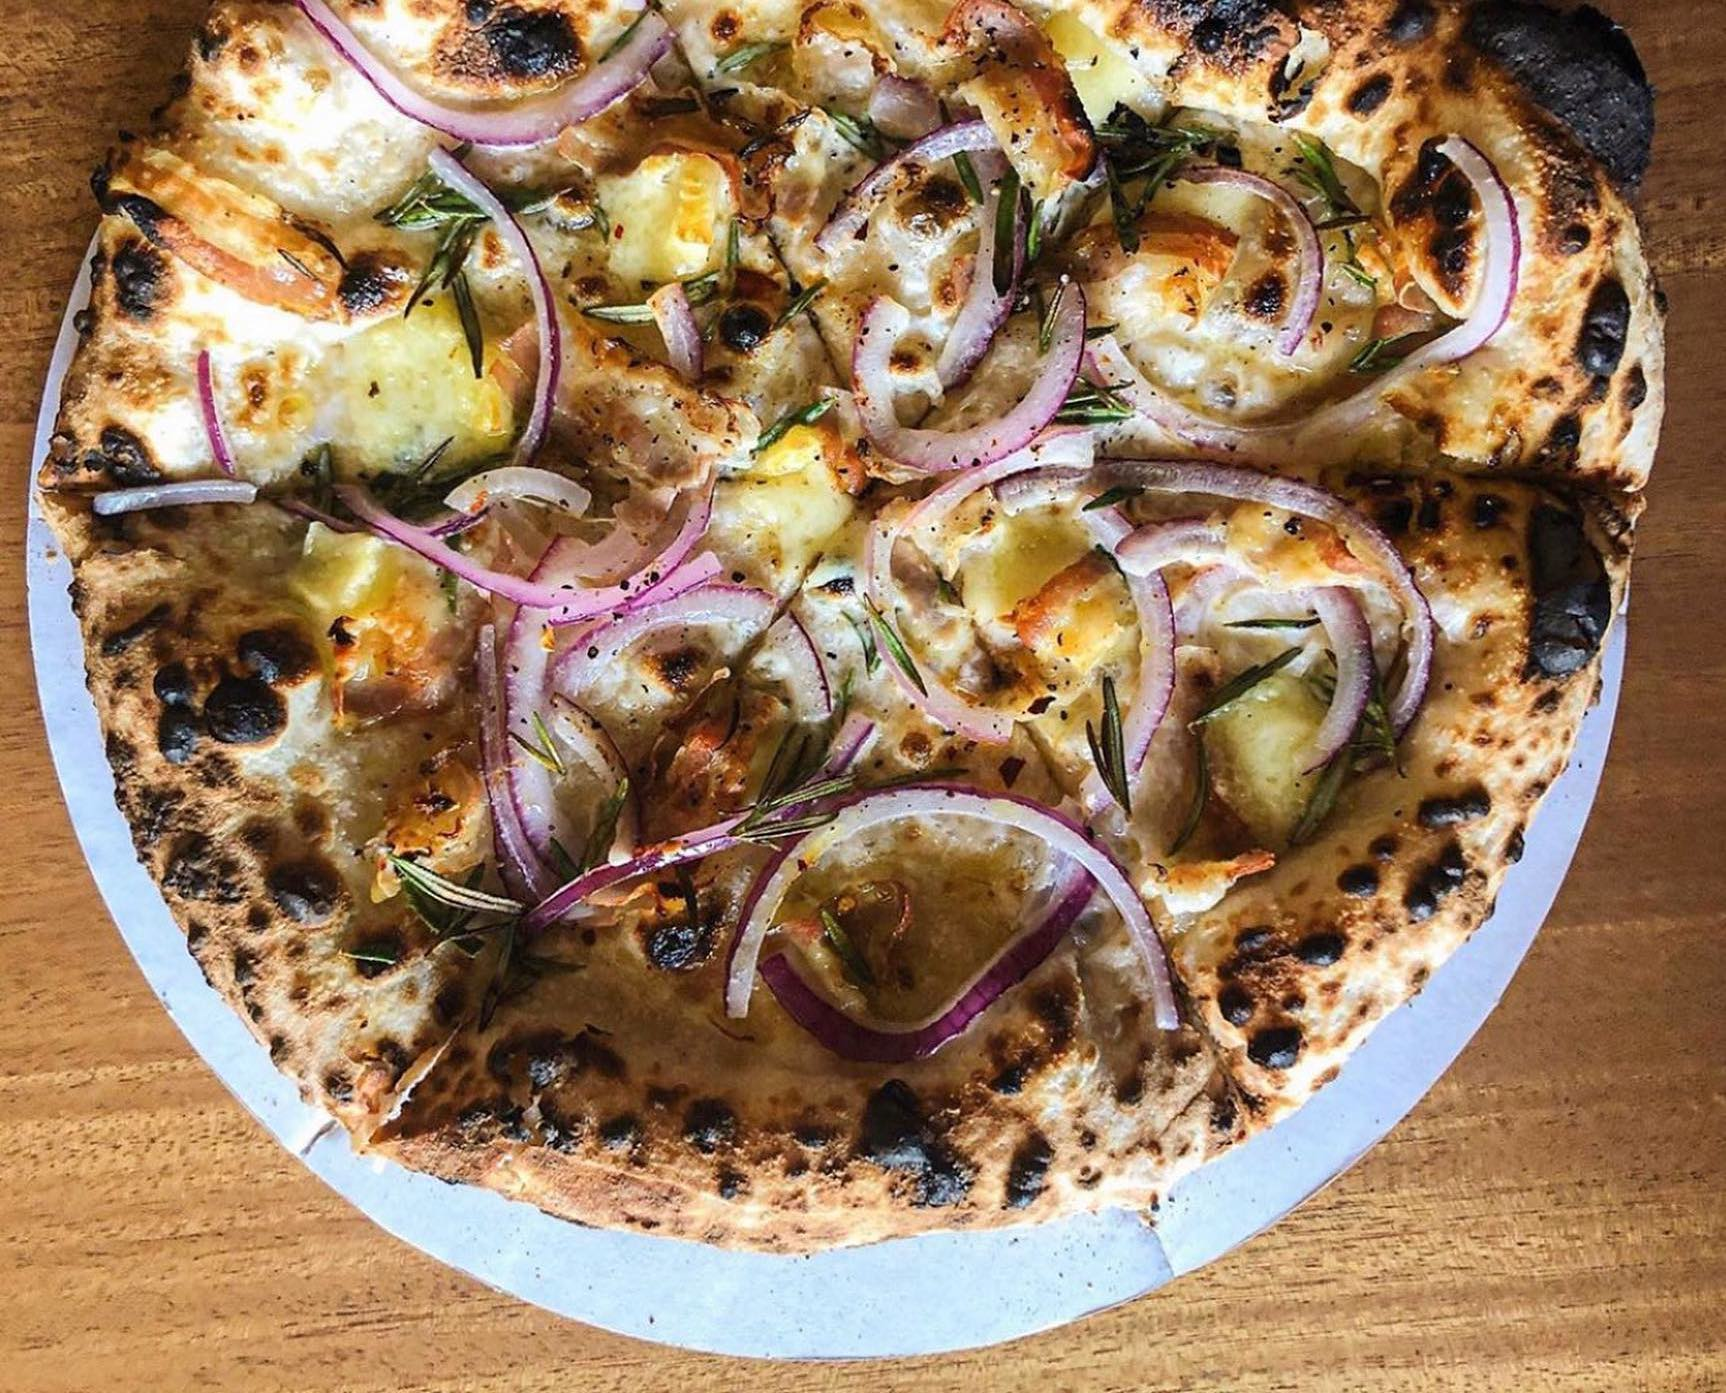 A blistered pizza on a white plate with red onions.